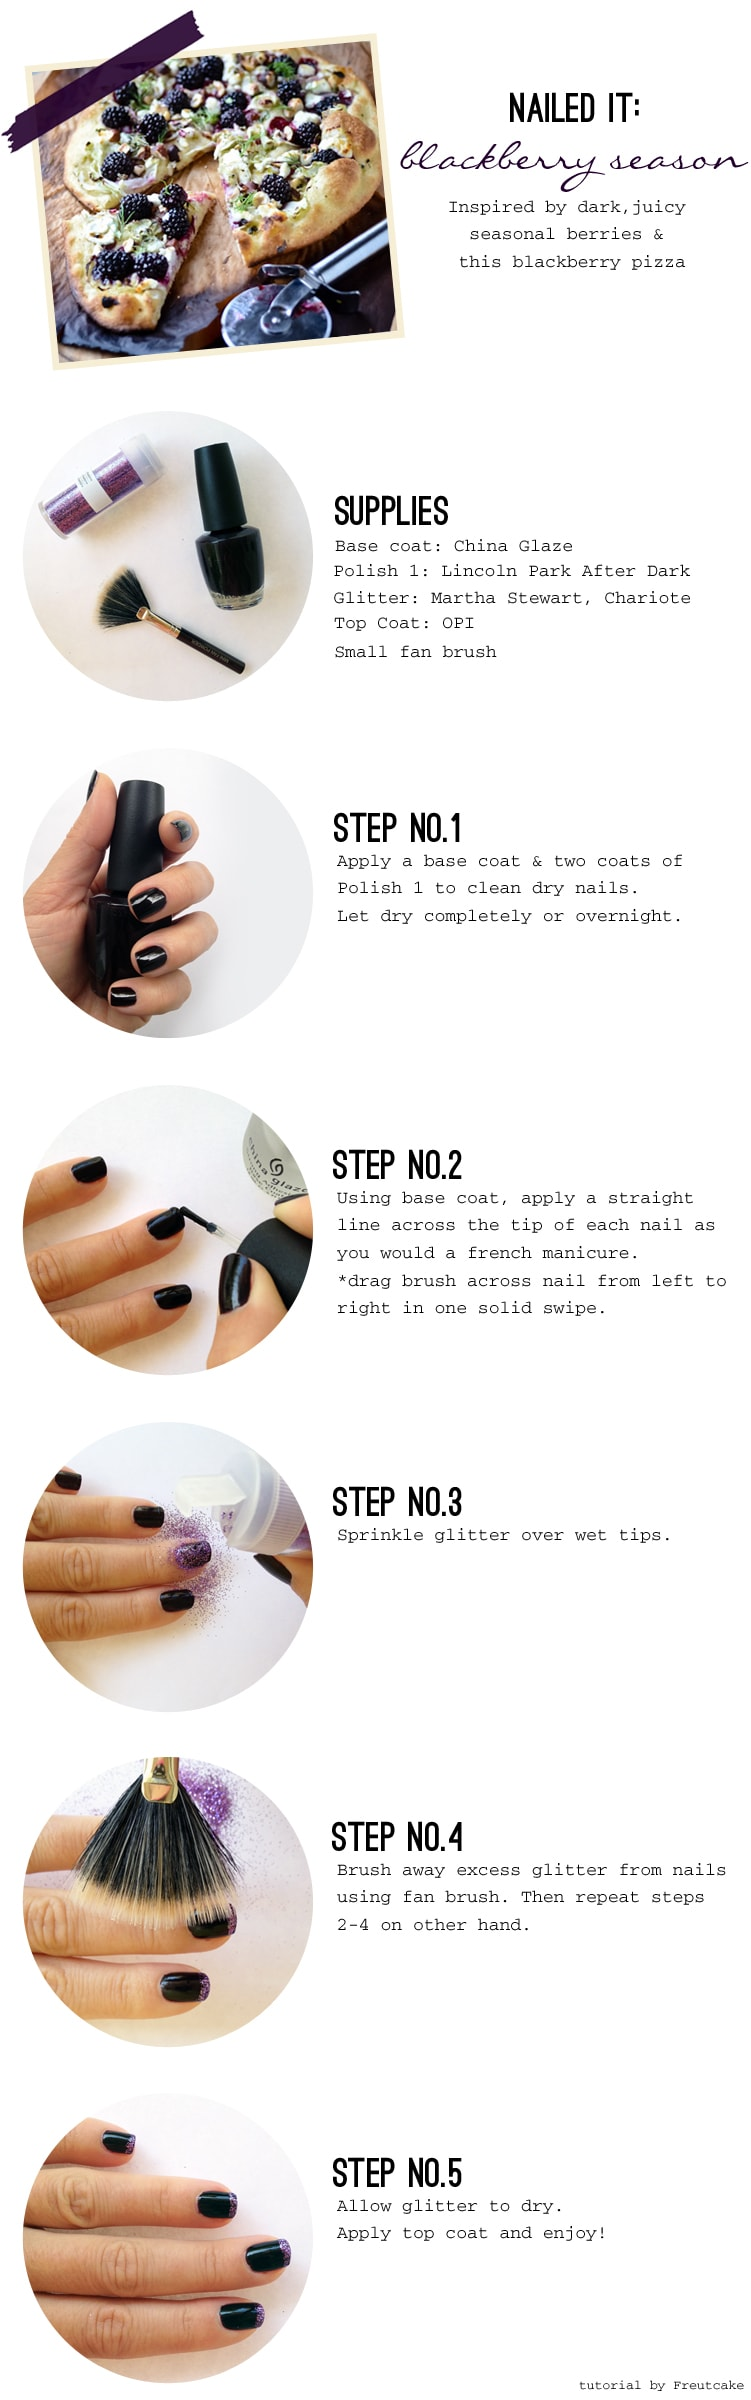 how to blackberry manicure {Nailed It} Blackberry Season